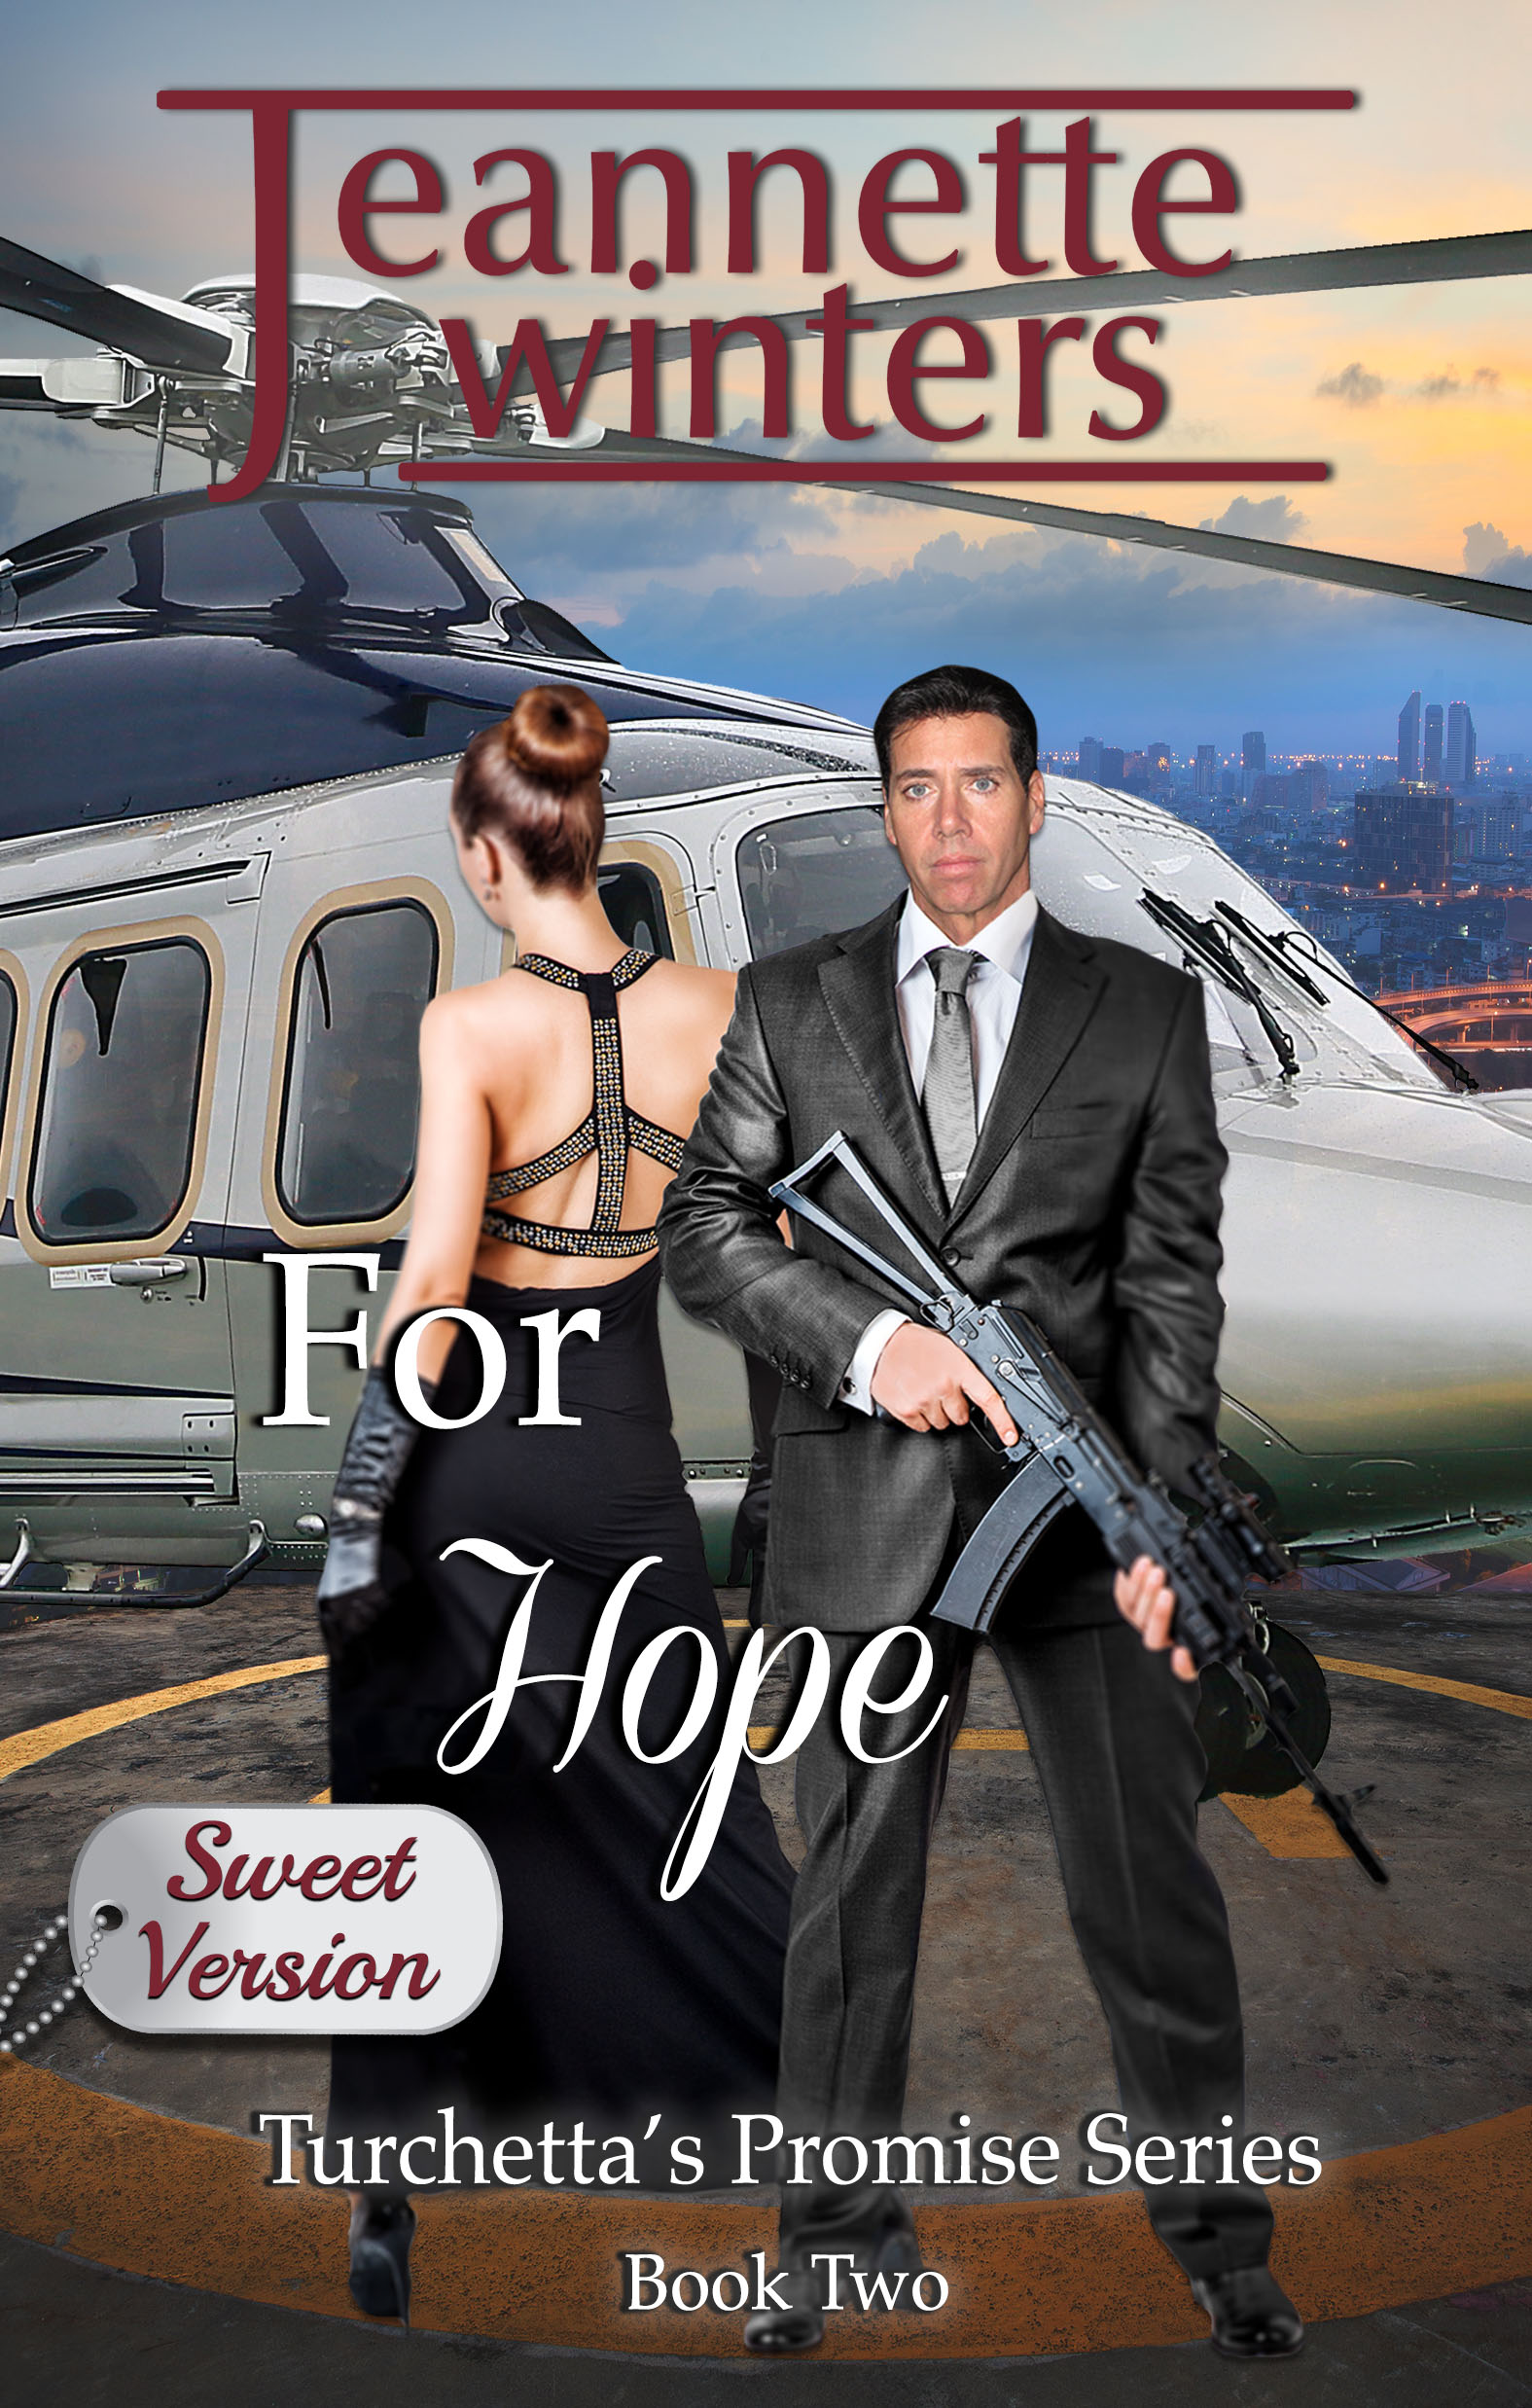 2 For Hope Sweet Version.jpg